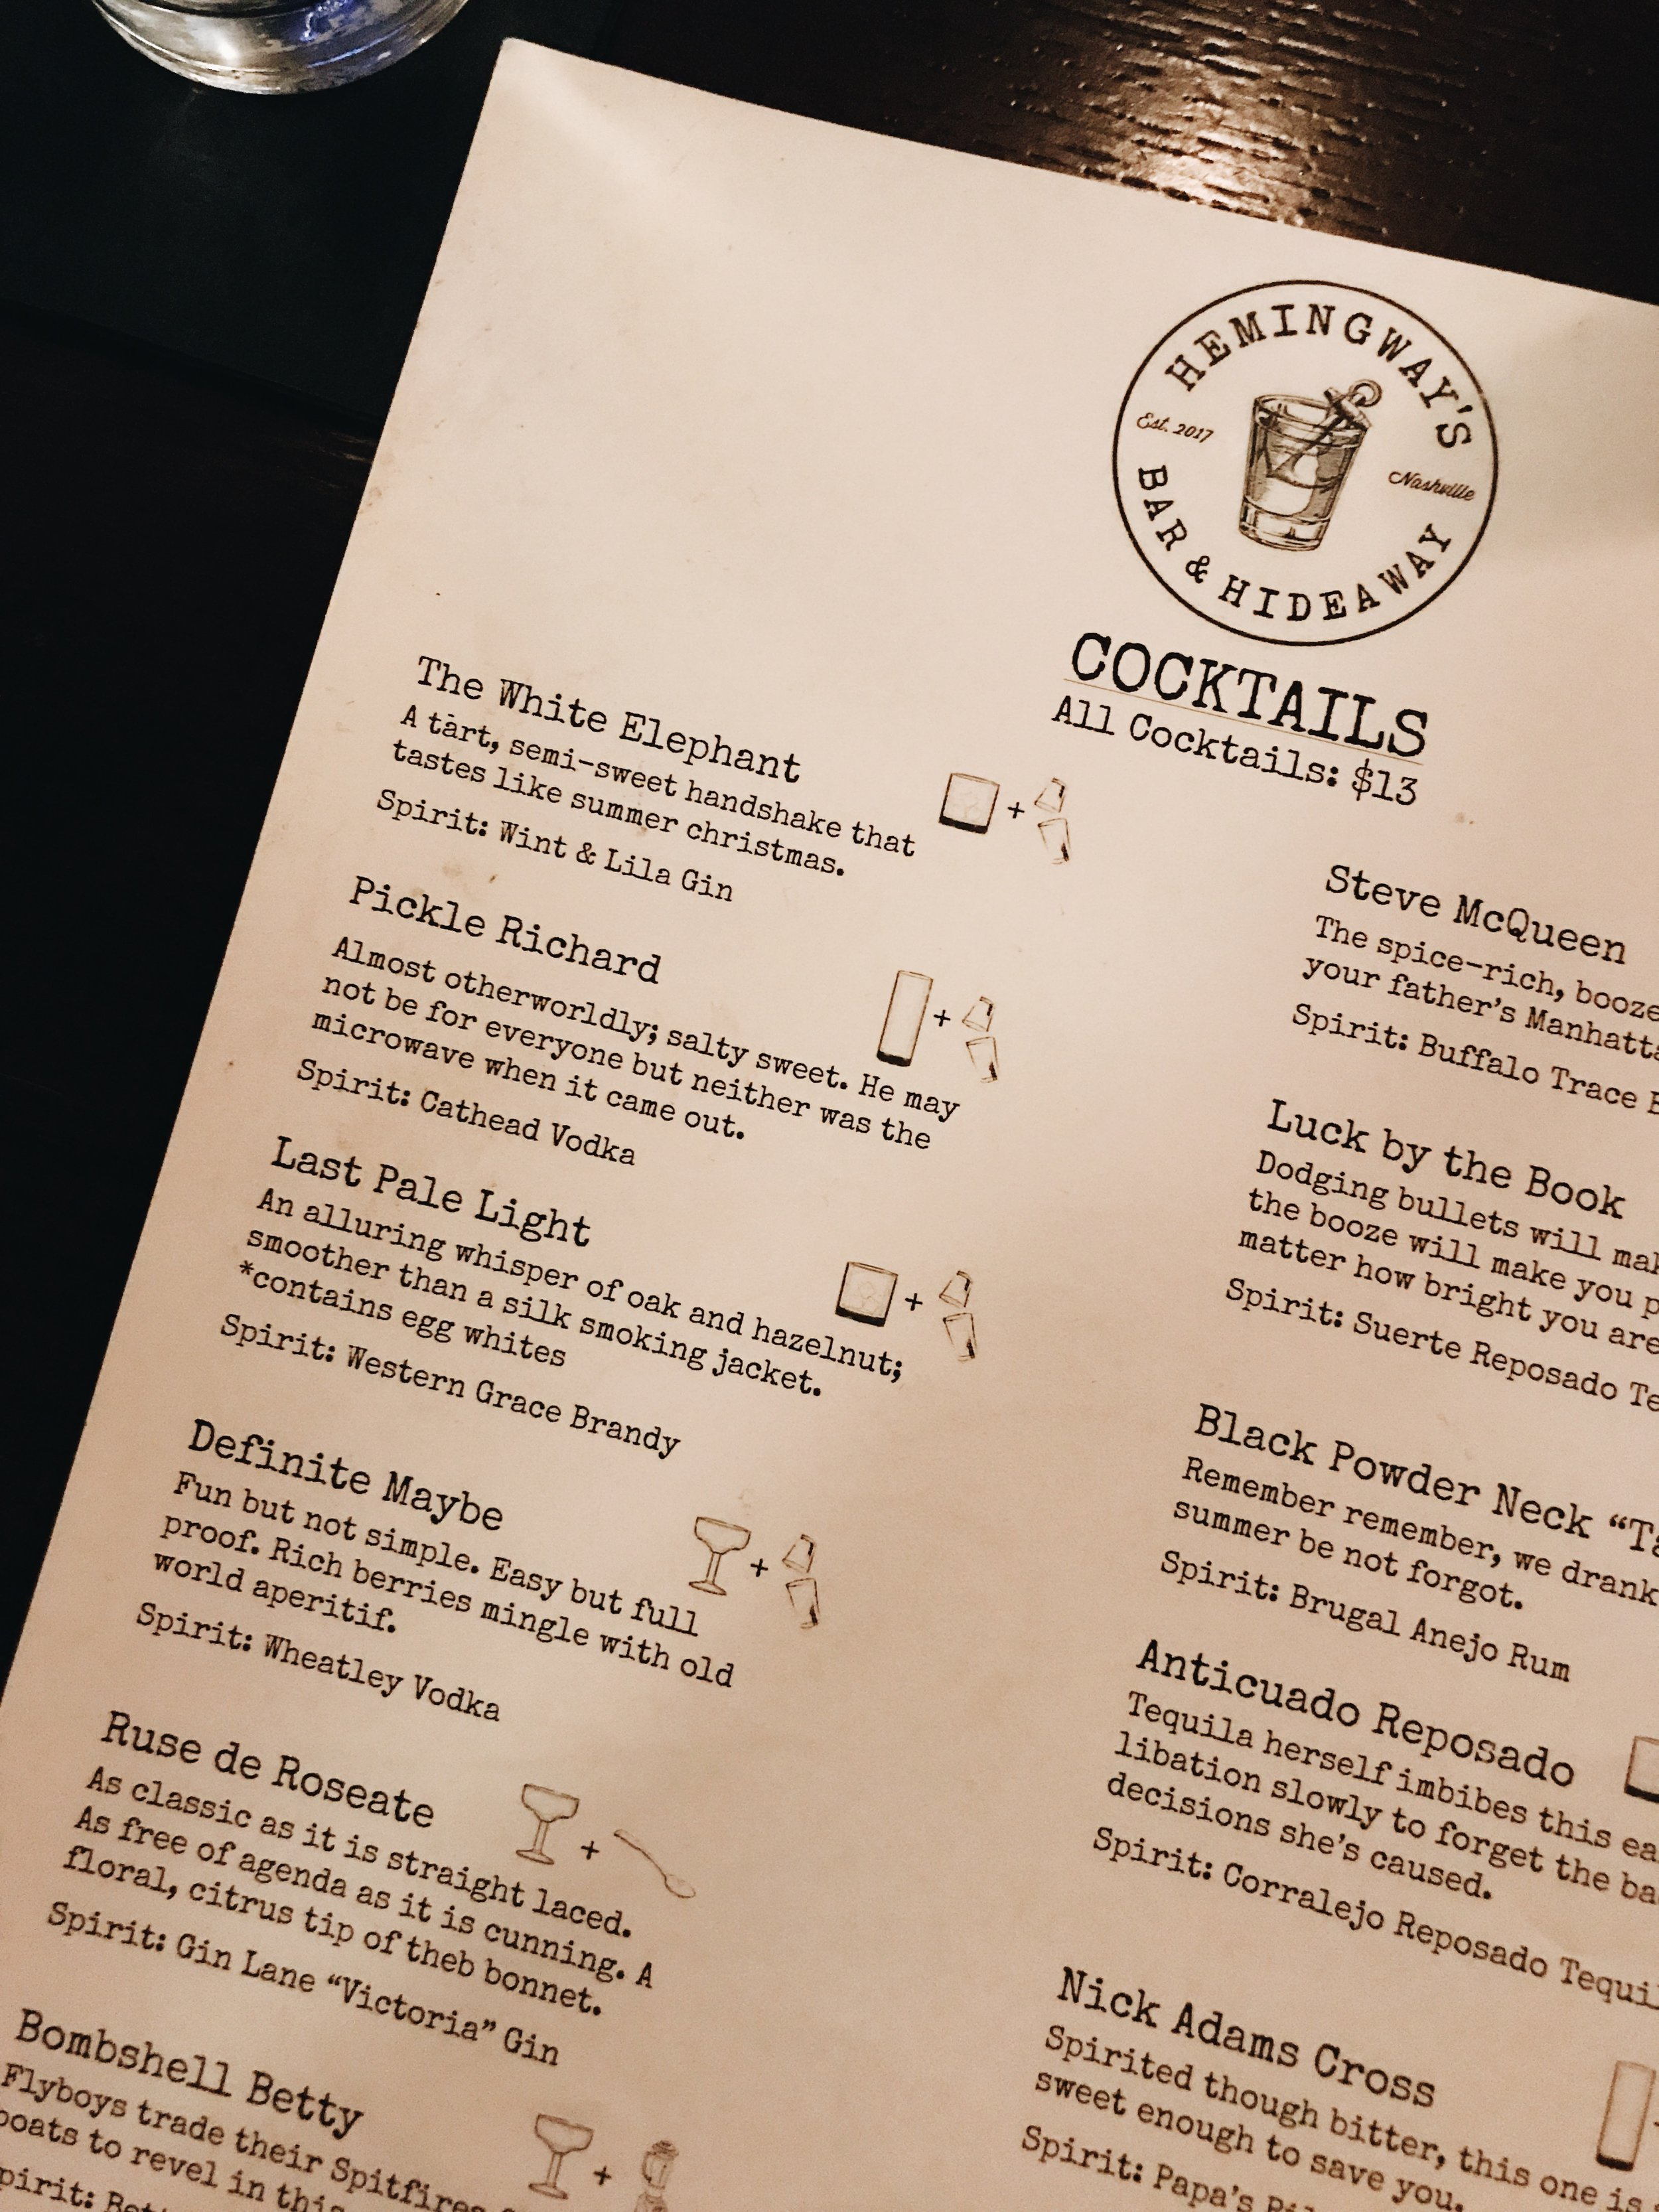 What made Hemingway's unique was that the ingredients weren't listed for their specialty cocktails. Instead, you were supposed to let the descriptions guide you. So fun!